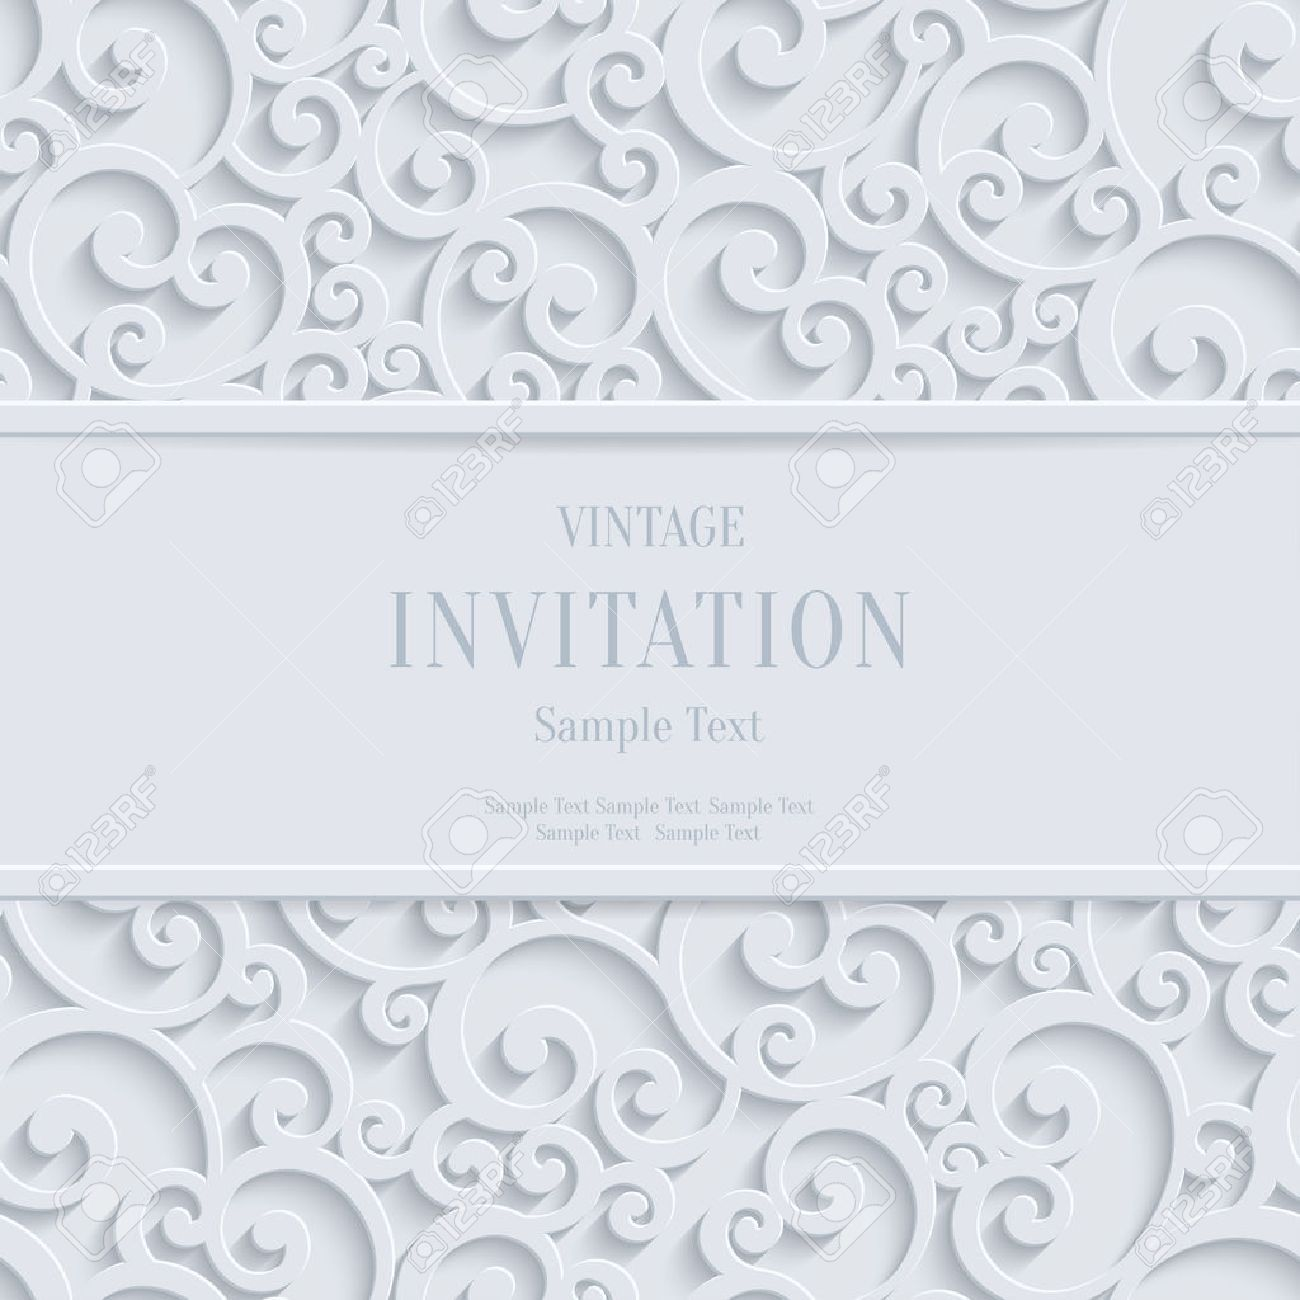 Floral Swirl Vector White 3d Christmas or Weddind Invitation Cards Background with Curl Damask Pattern - 42043670